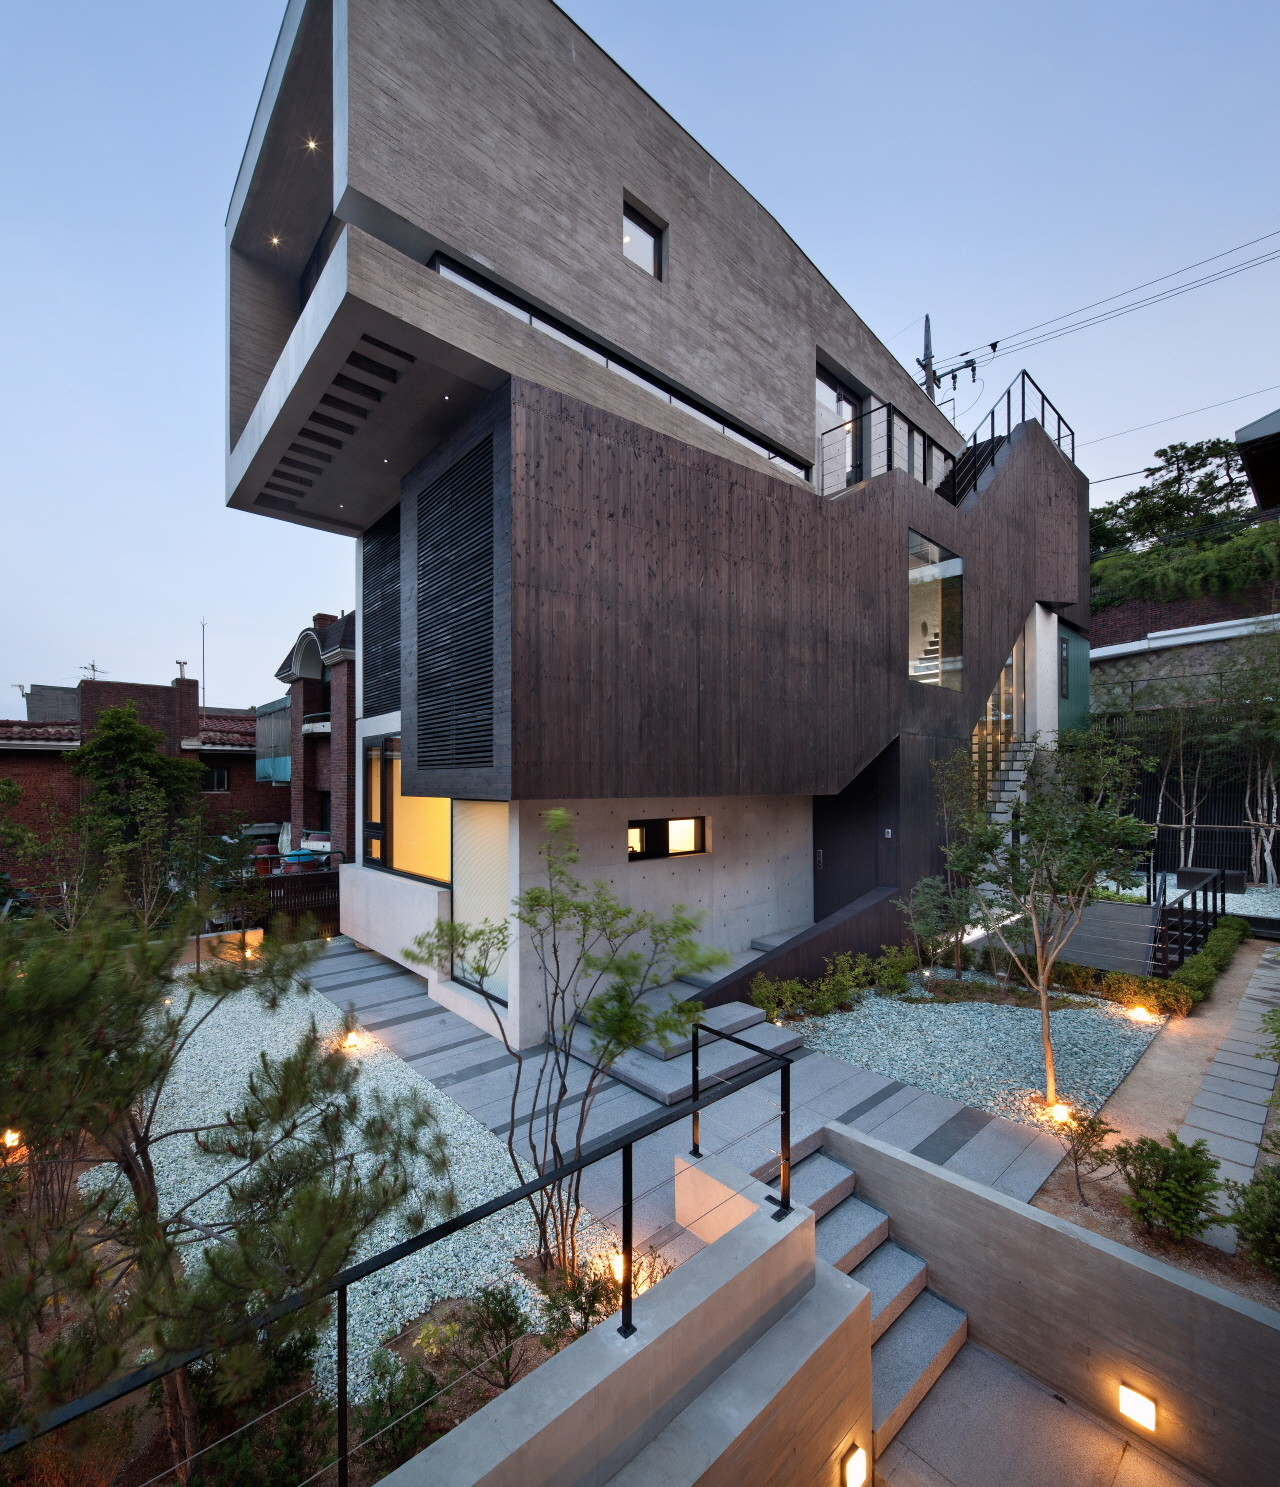 Galeria de h house sae min oh bang by min 3 - The subterranean house fighting small spaces ...